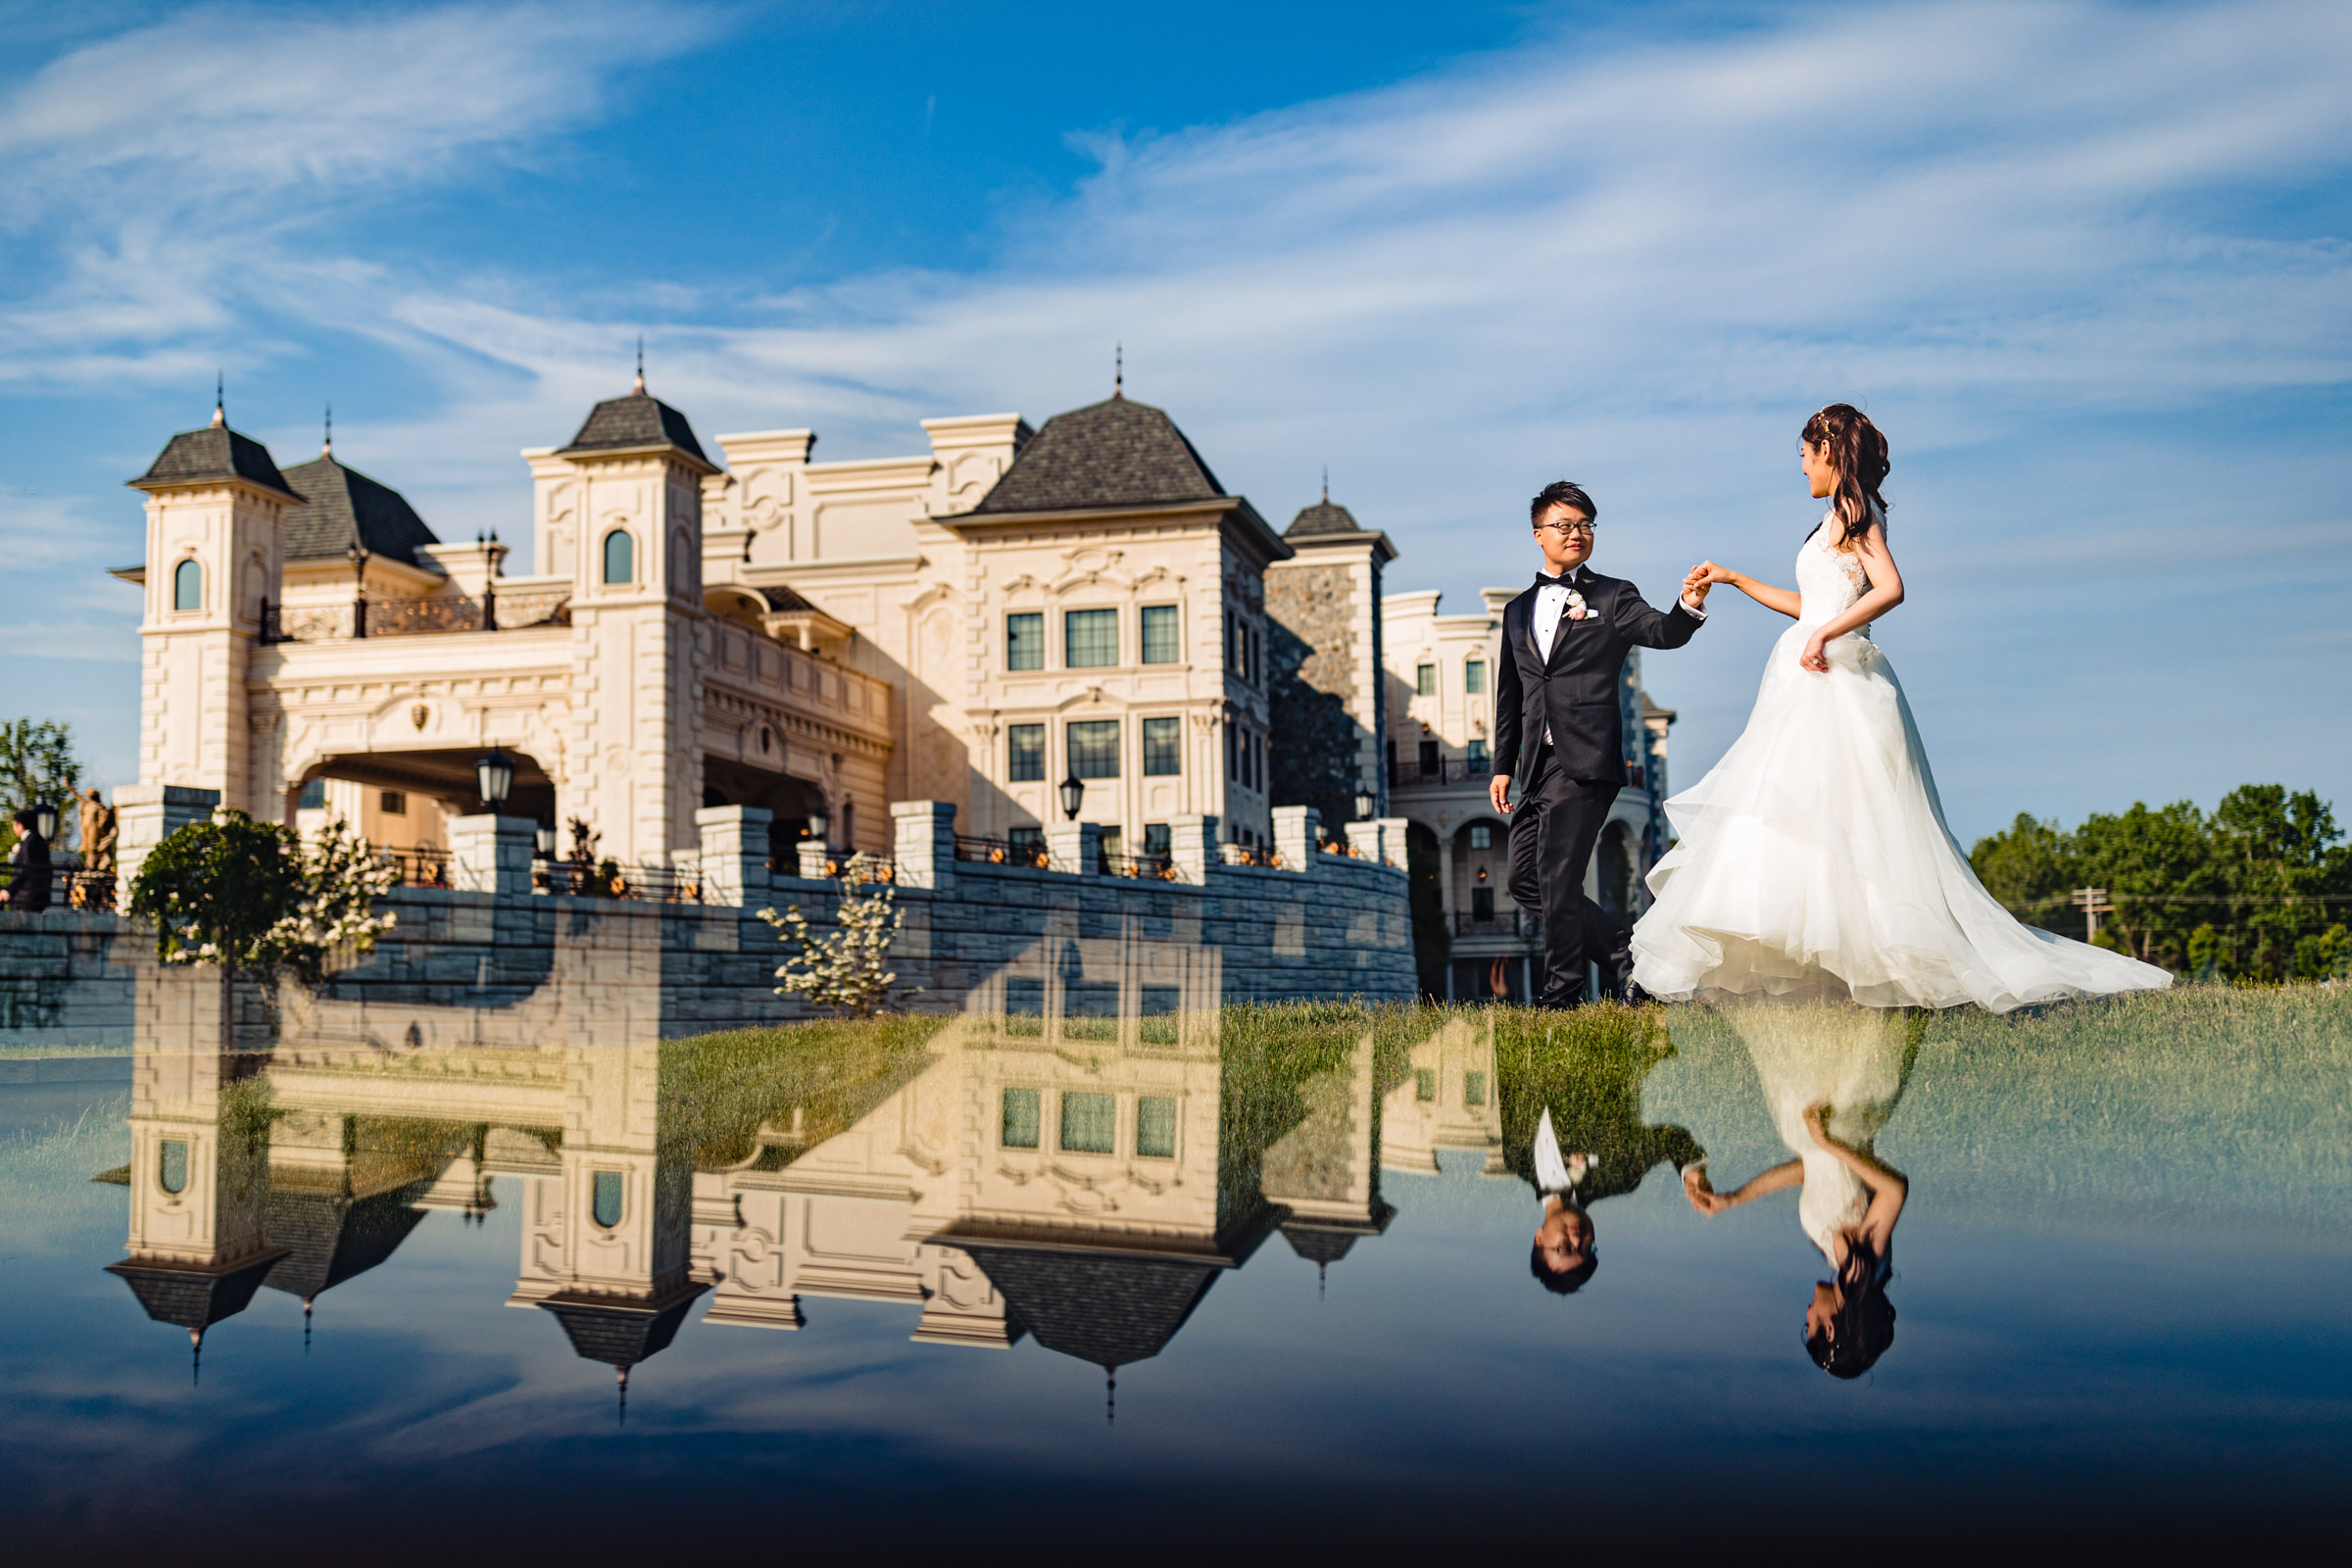 wedding-at-legacy-castle-in-pompton-plains-nj-photo-by-yun-li-photography-new-jersey